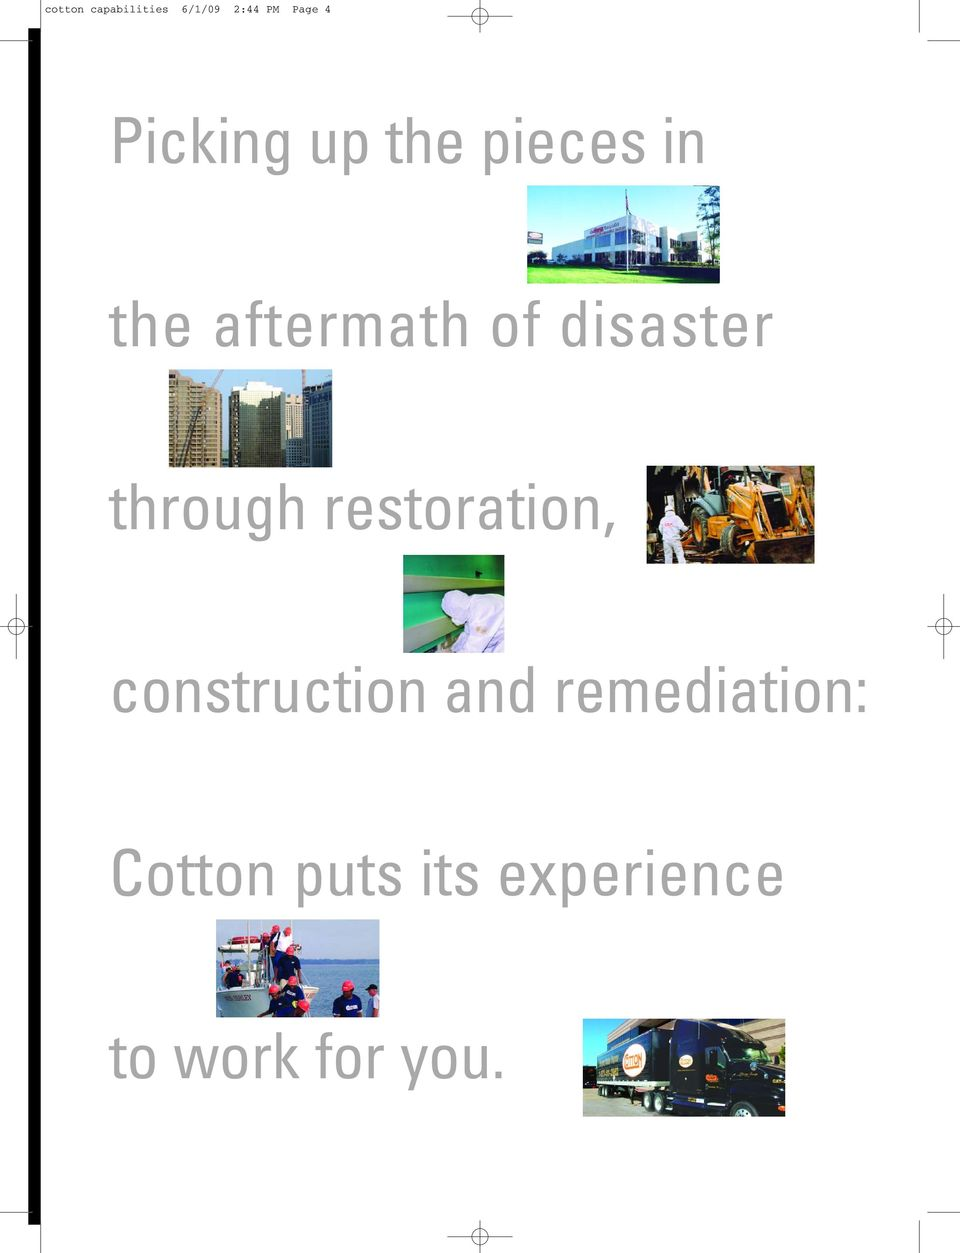 disaster through restoration, construction and